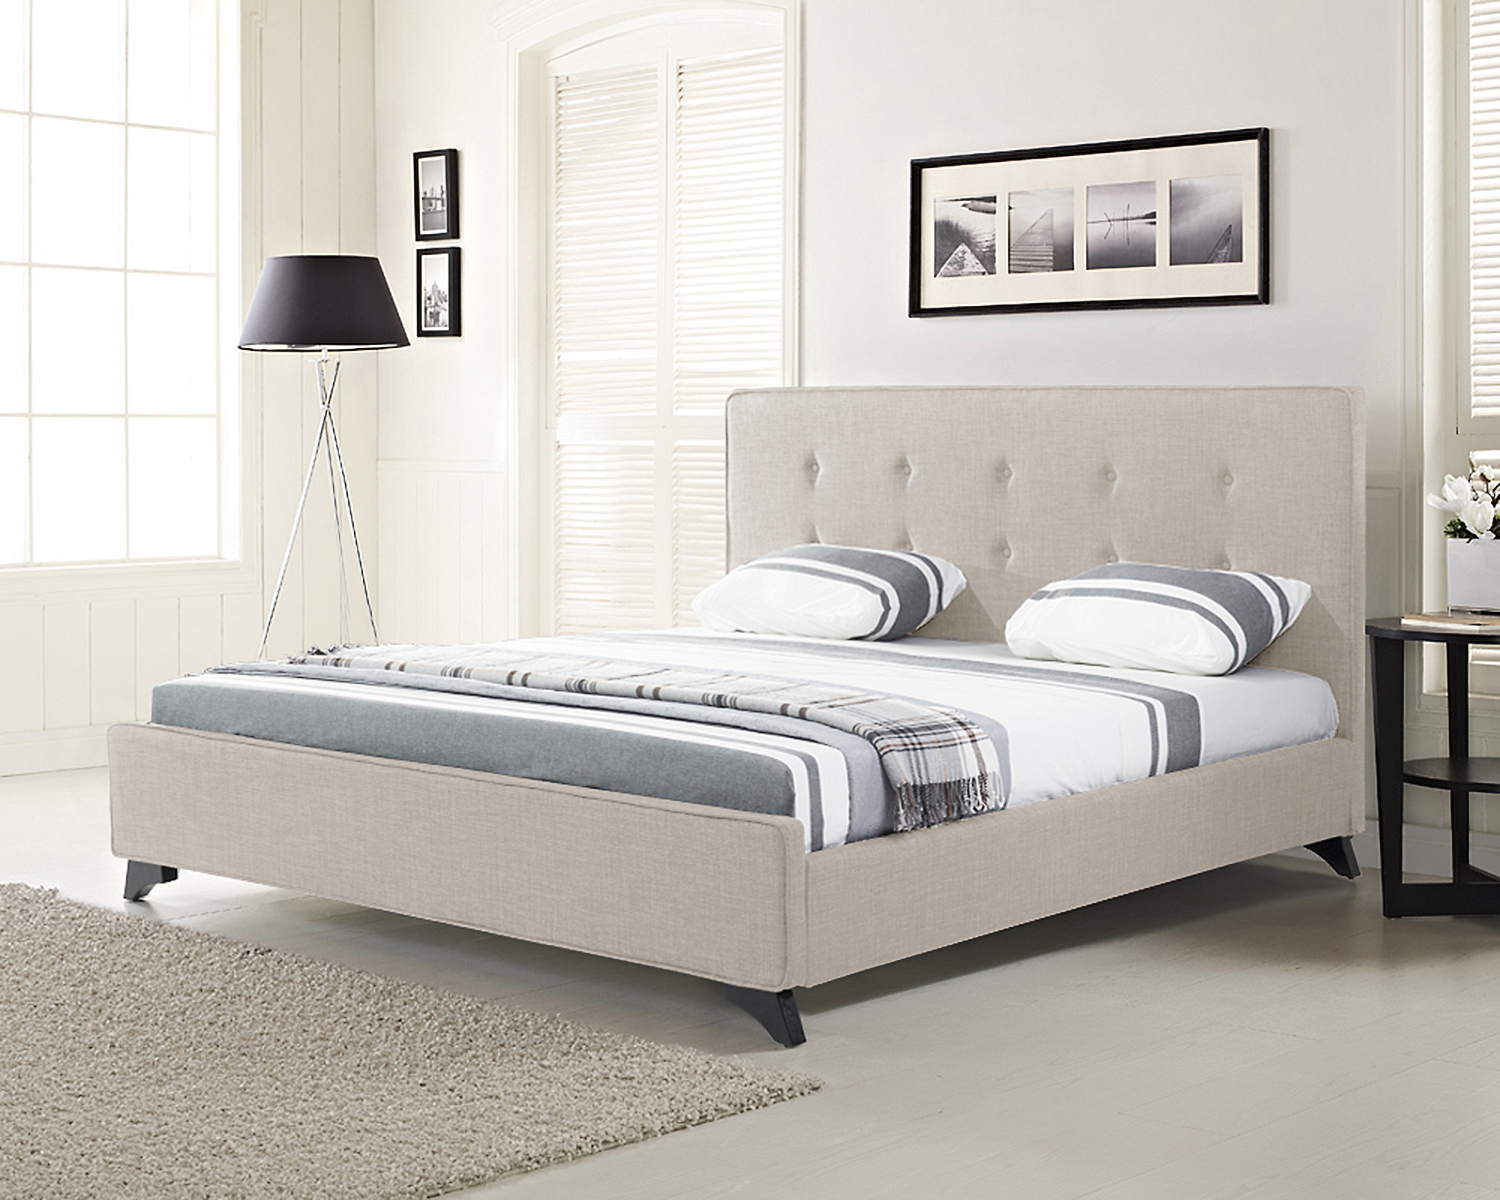 Bed king size 160x200 cm bedroom upholstered fabric for Upholstered divan bed